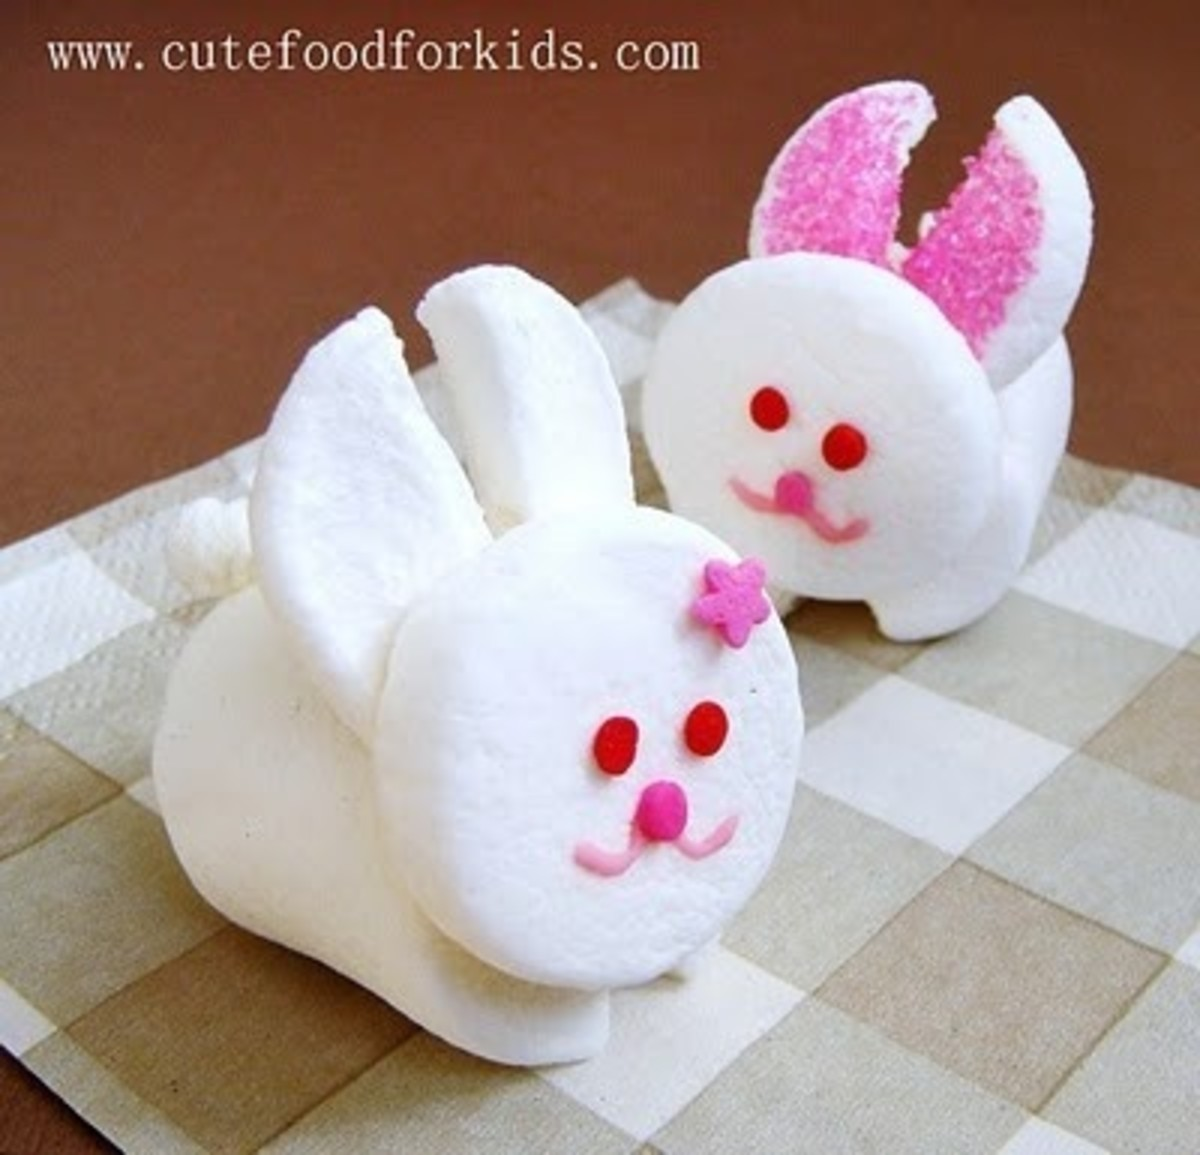 Edible Easter bunny craft ideas are perfect for the after school project!